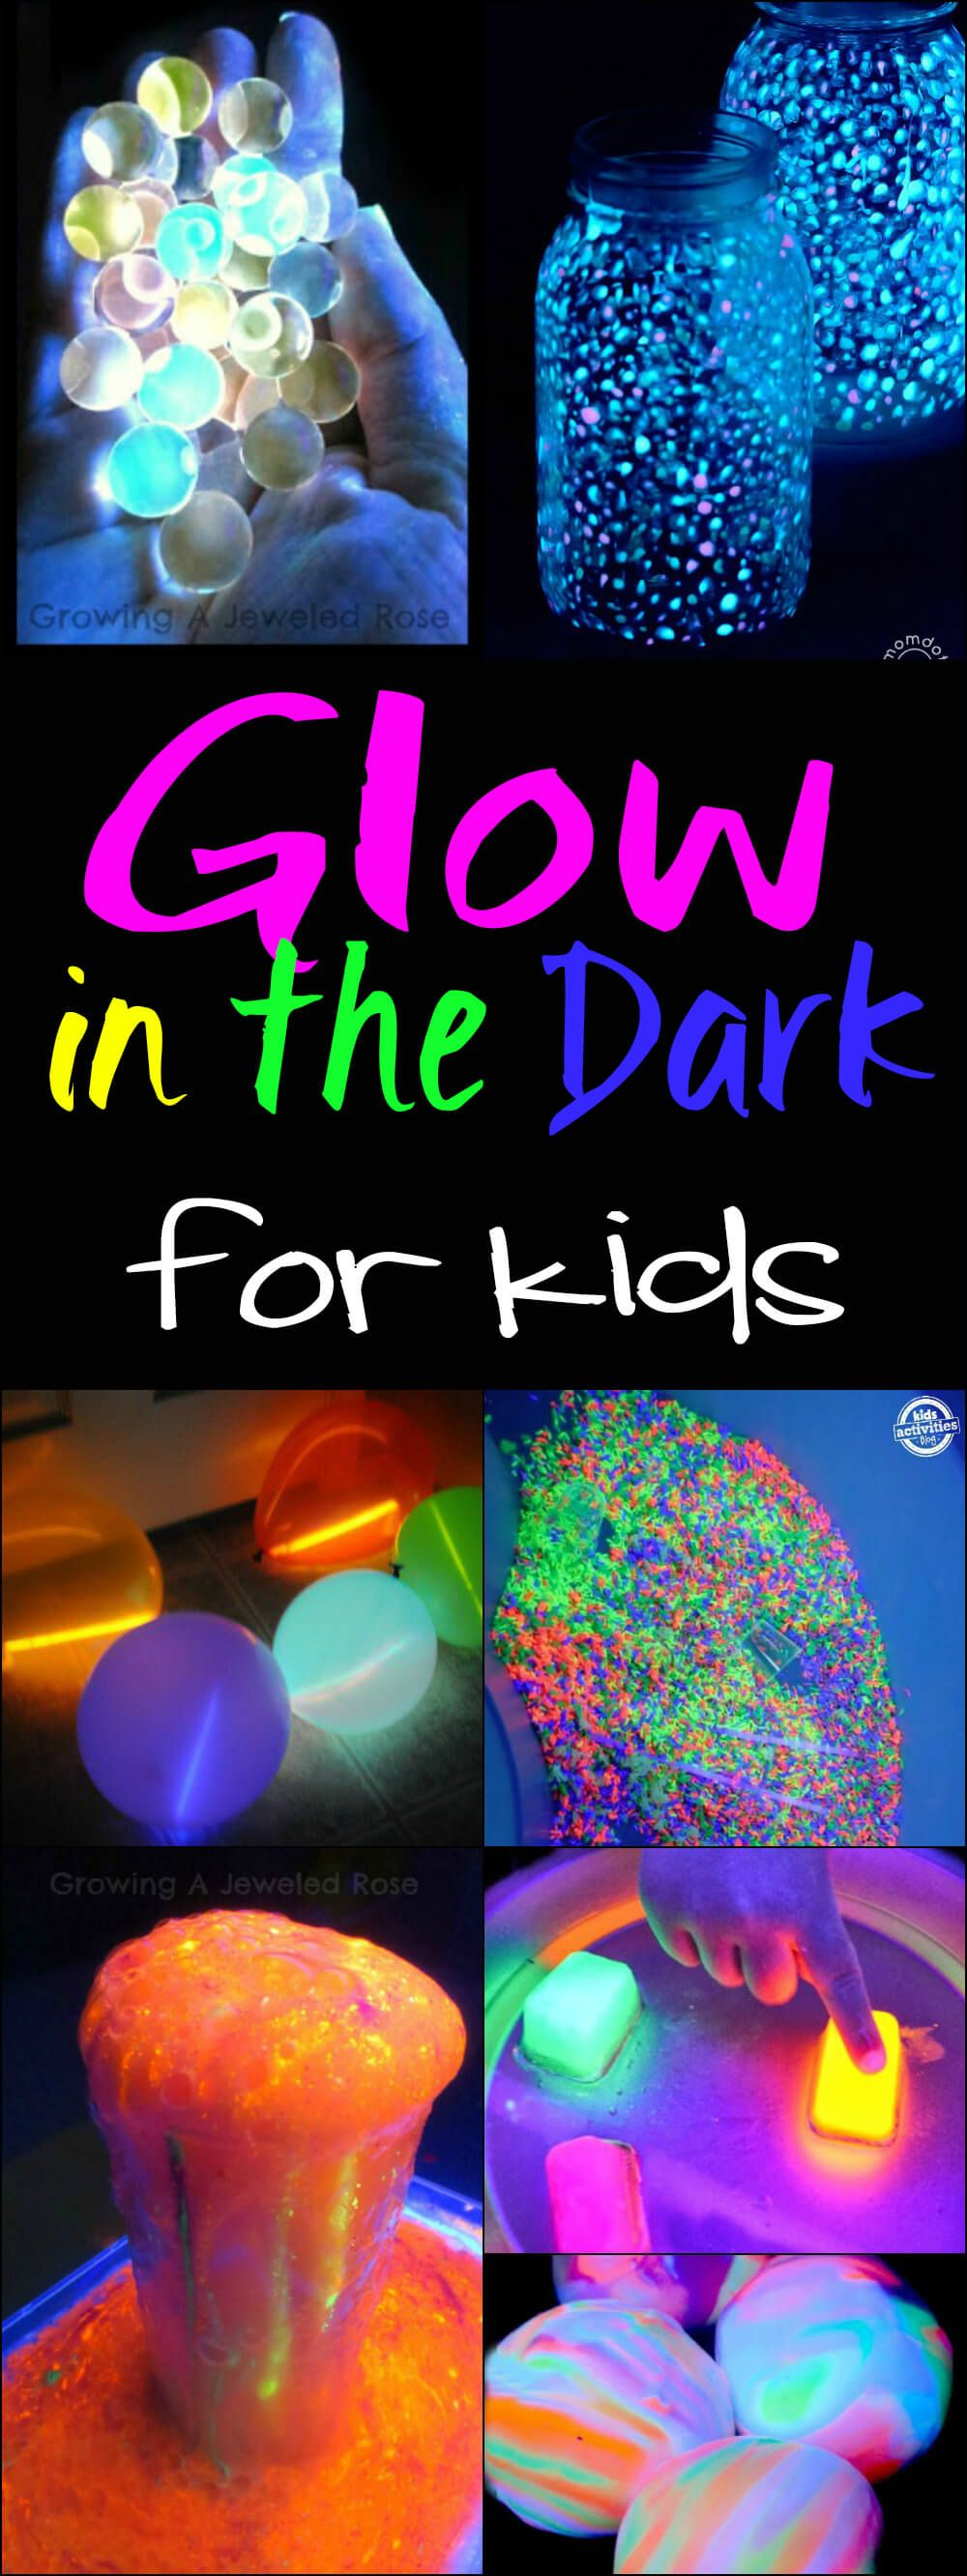 Glow In The Dark Ideas For Kids For The Kids Fun Crafts Diy For